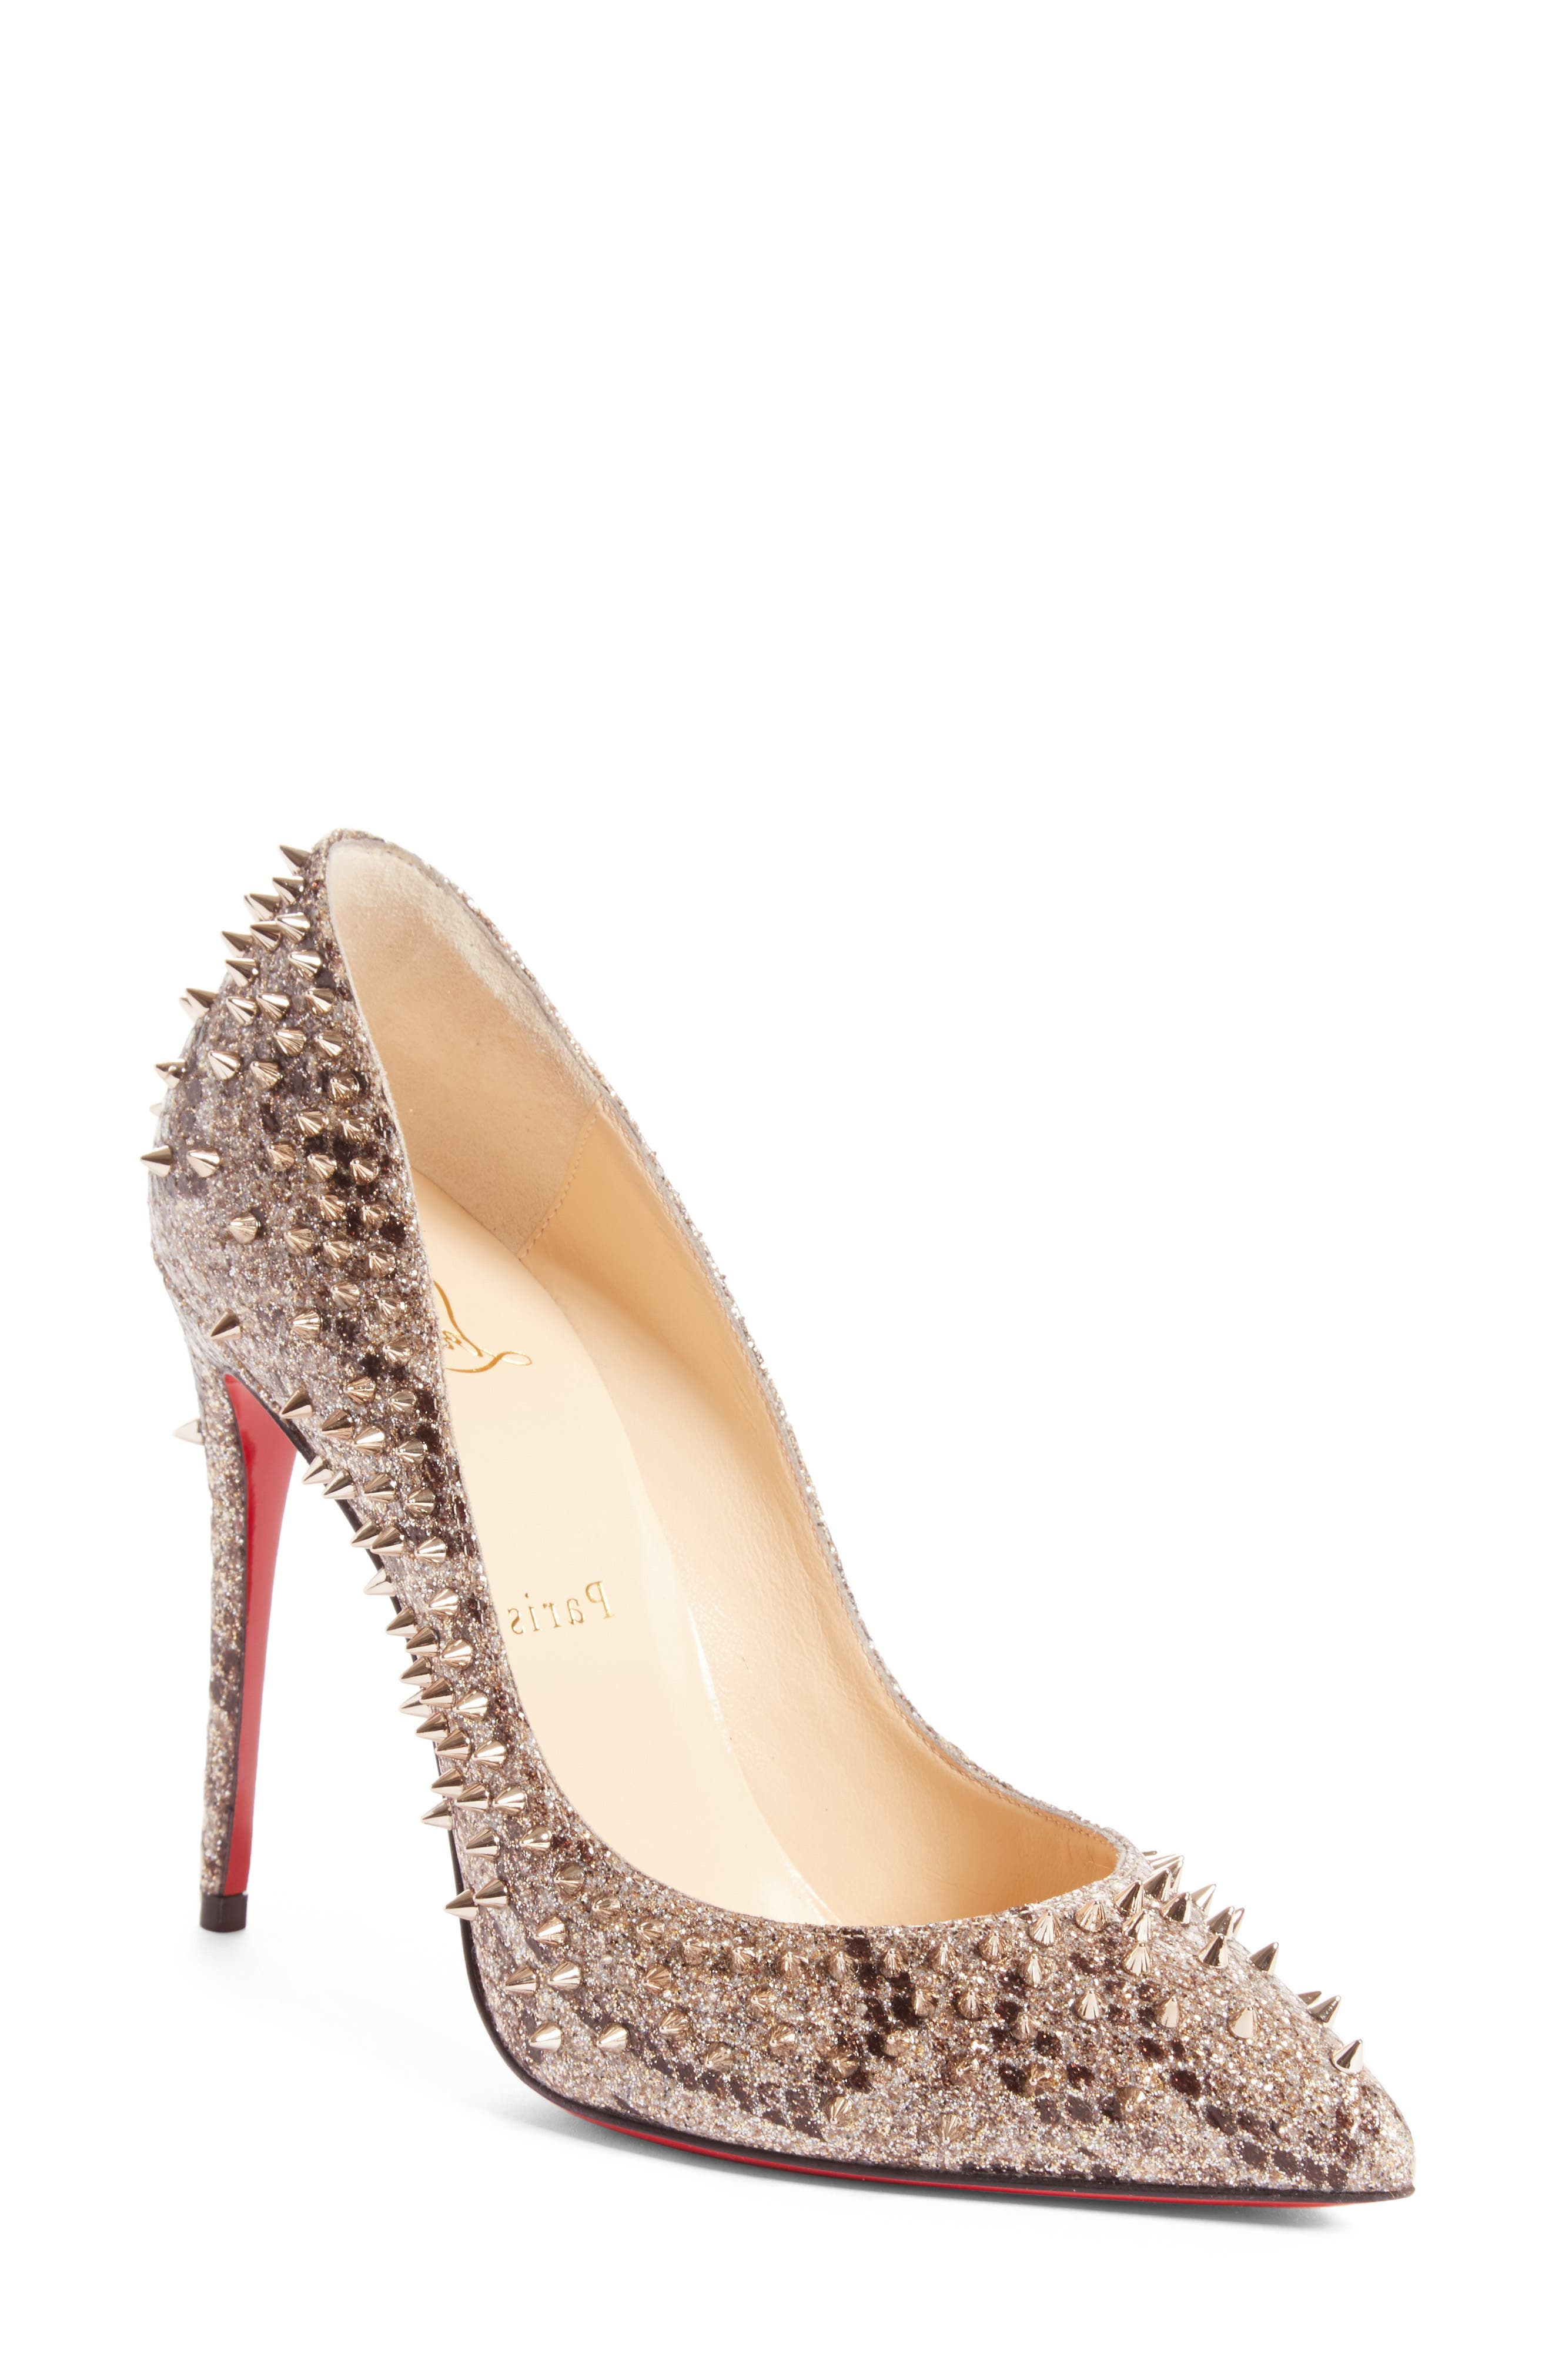 Alternate Image 1 Selected - Christian Louboutin Escarpic Spike Pump (Women)